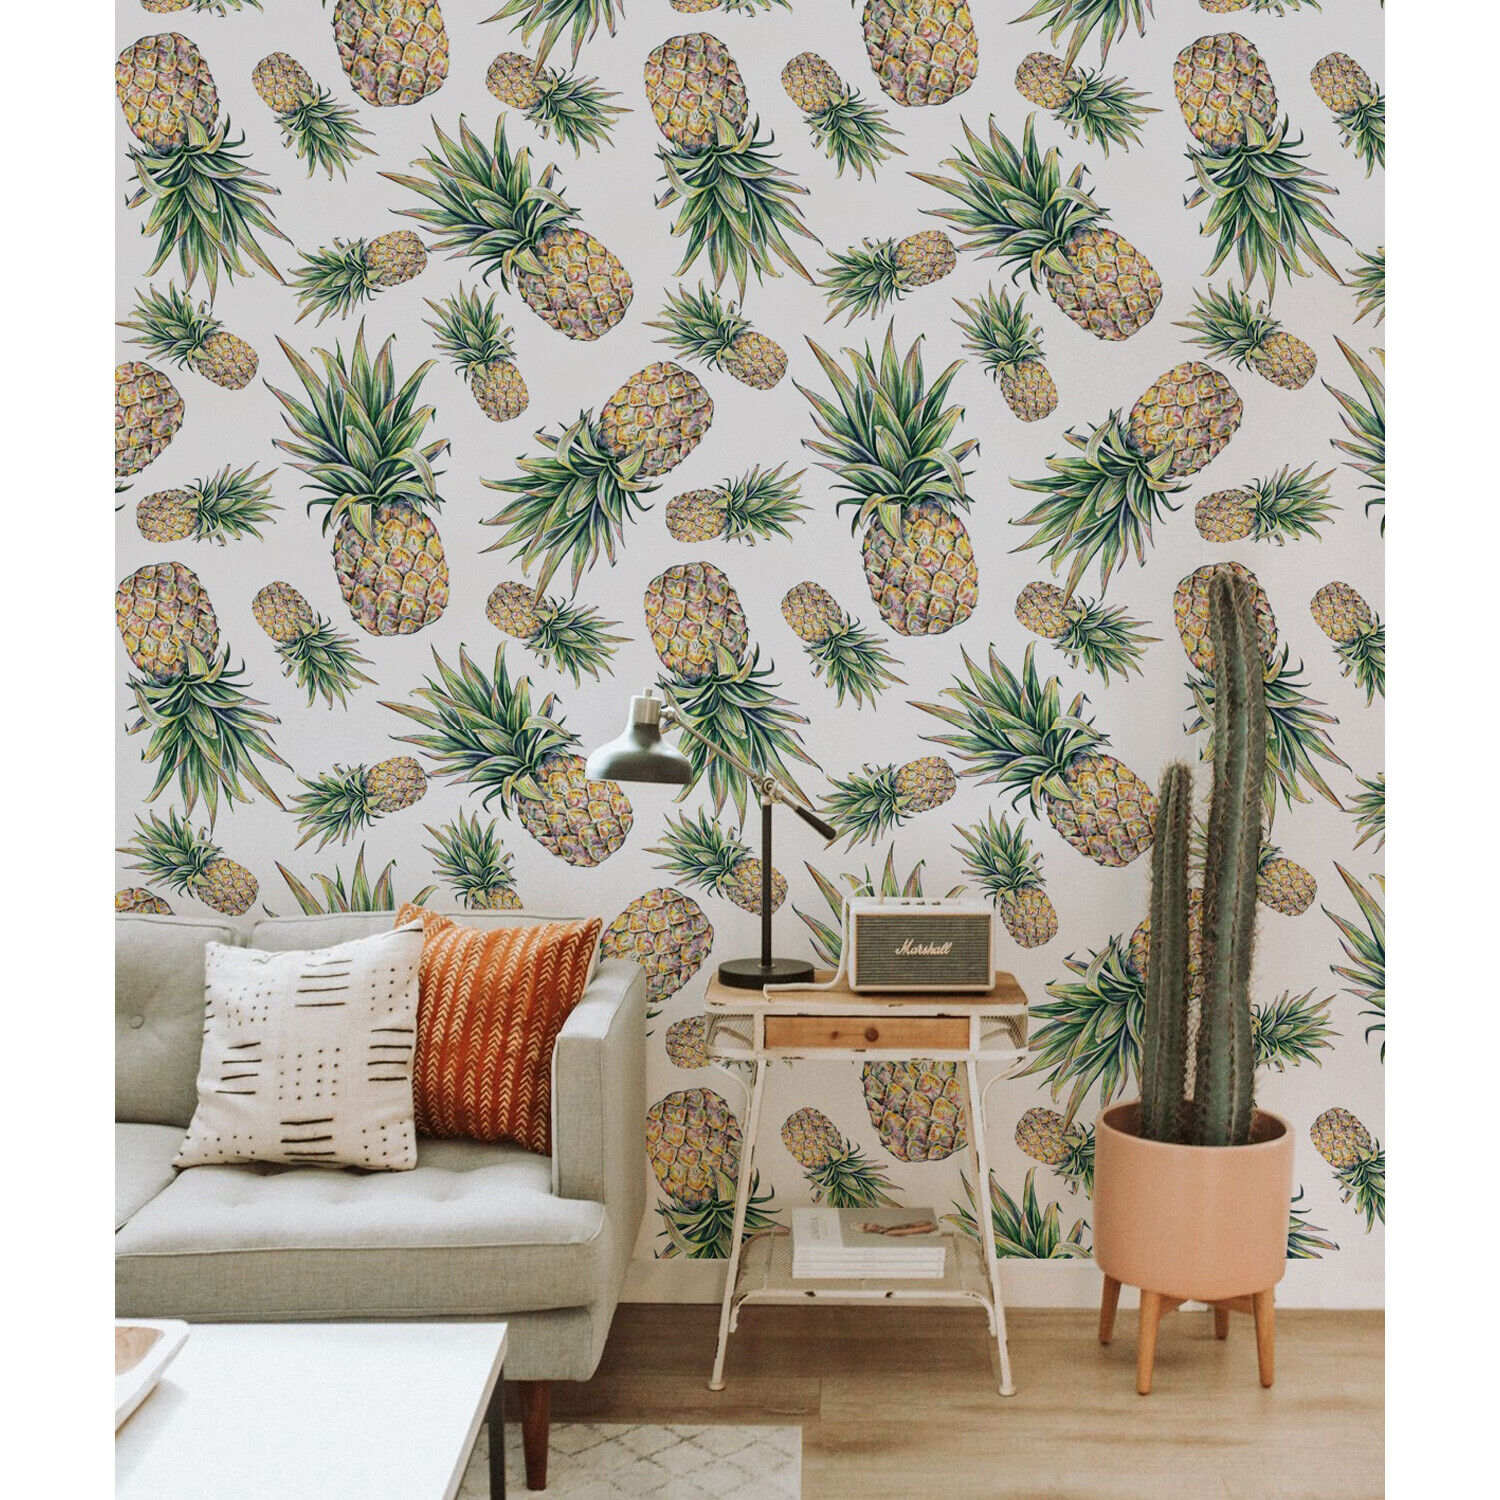 Pineapple removable wallpaper Modern Fruits Exotic Tropical Wall Mural